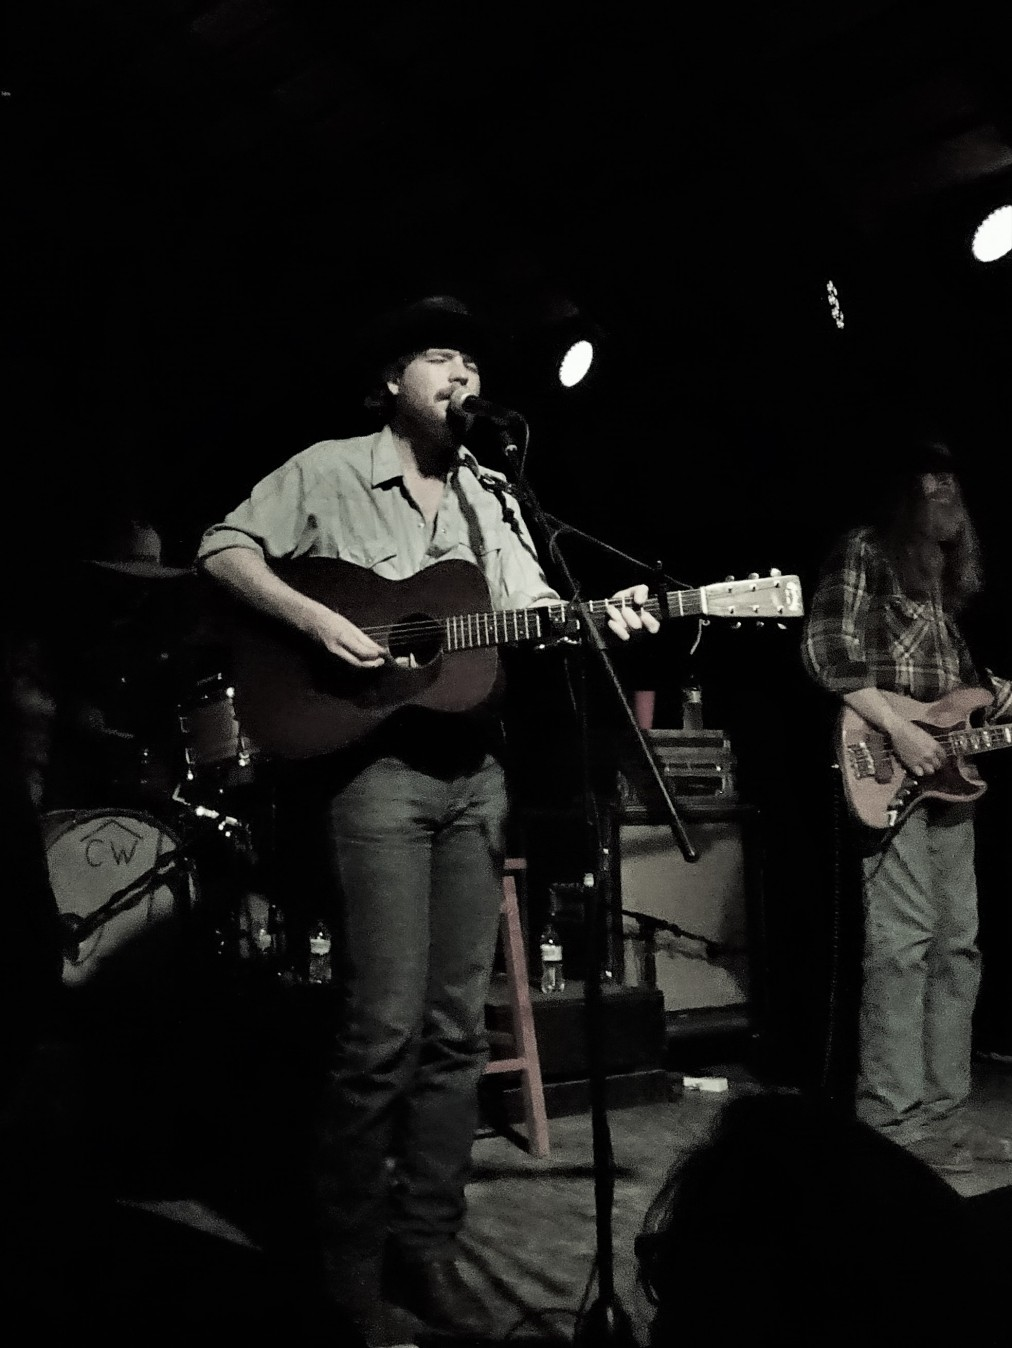 Ian Noe and Colter Wall.